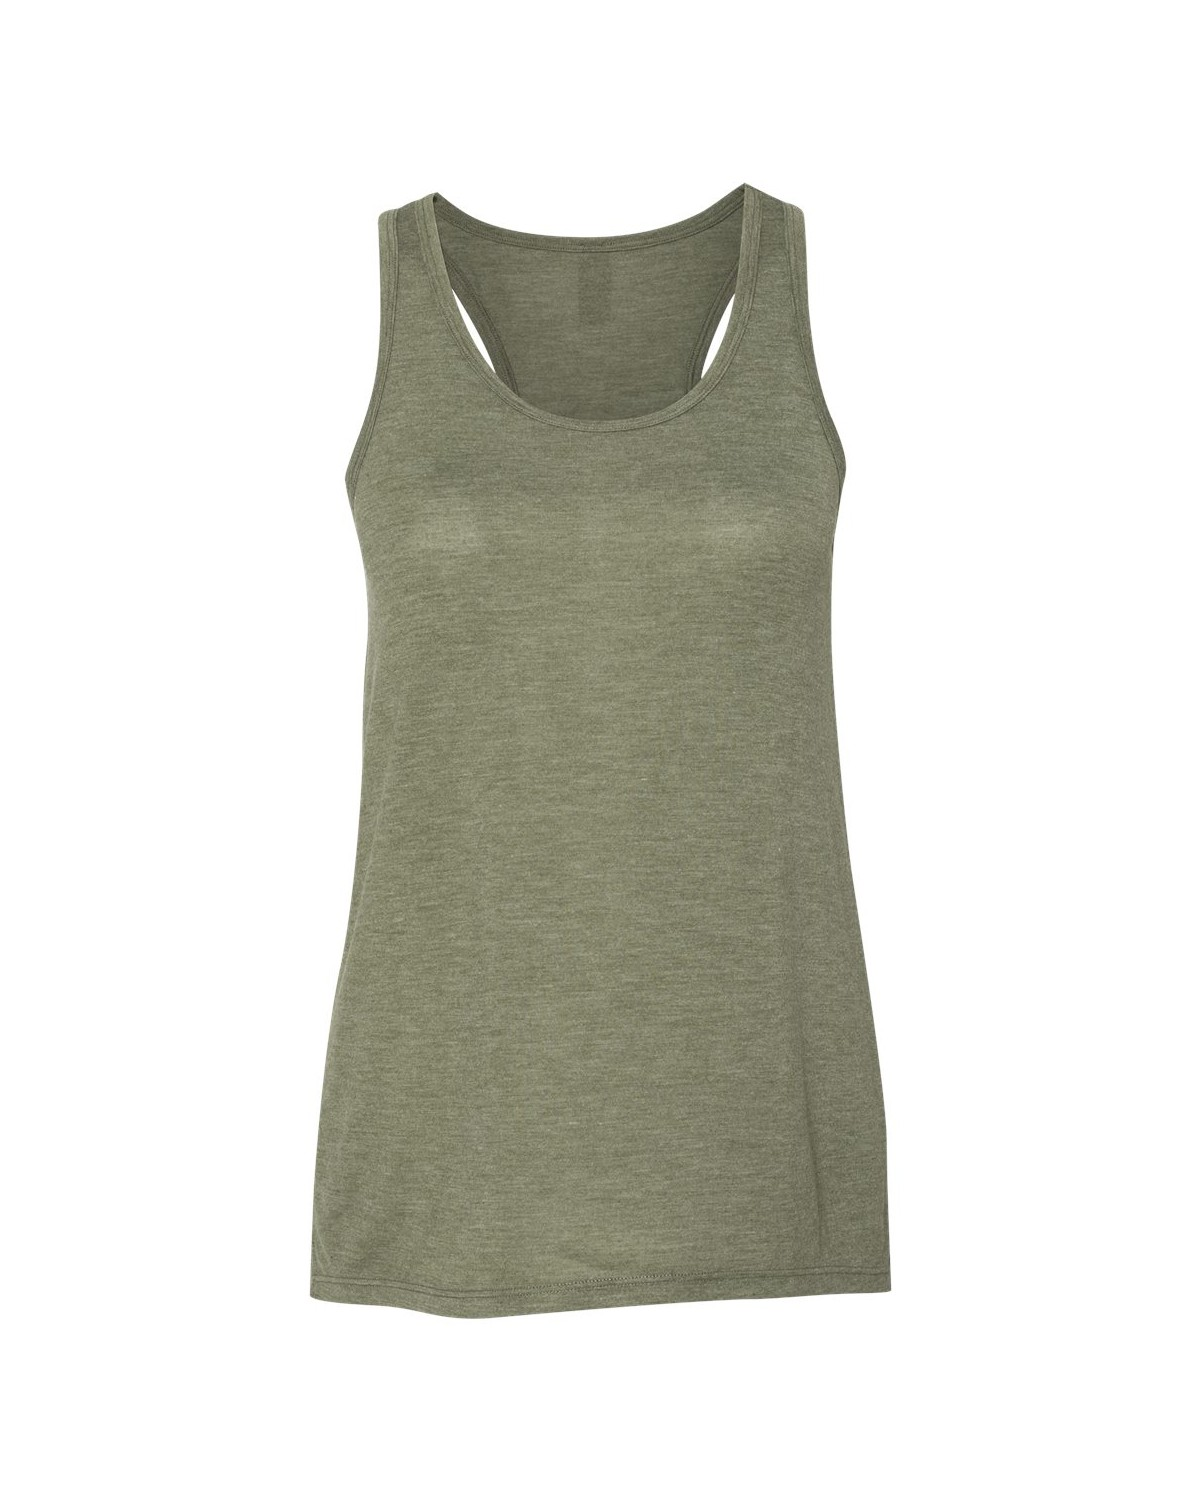 AFX90UN Independent Trading CHARCOAL HEATHER